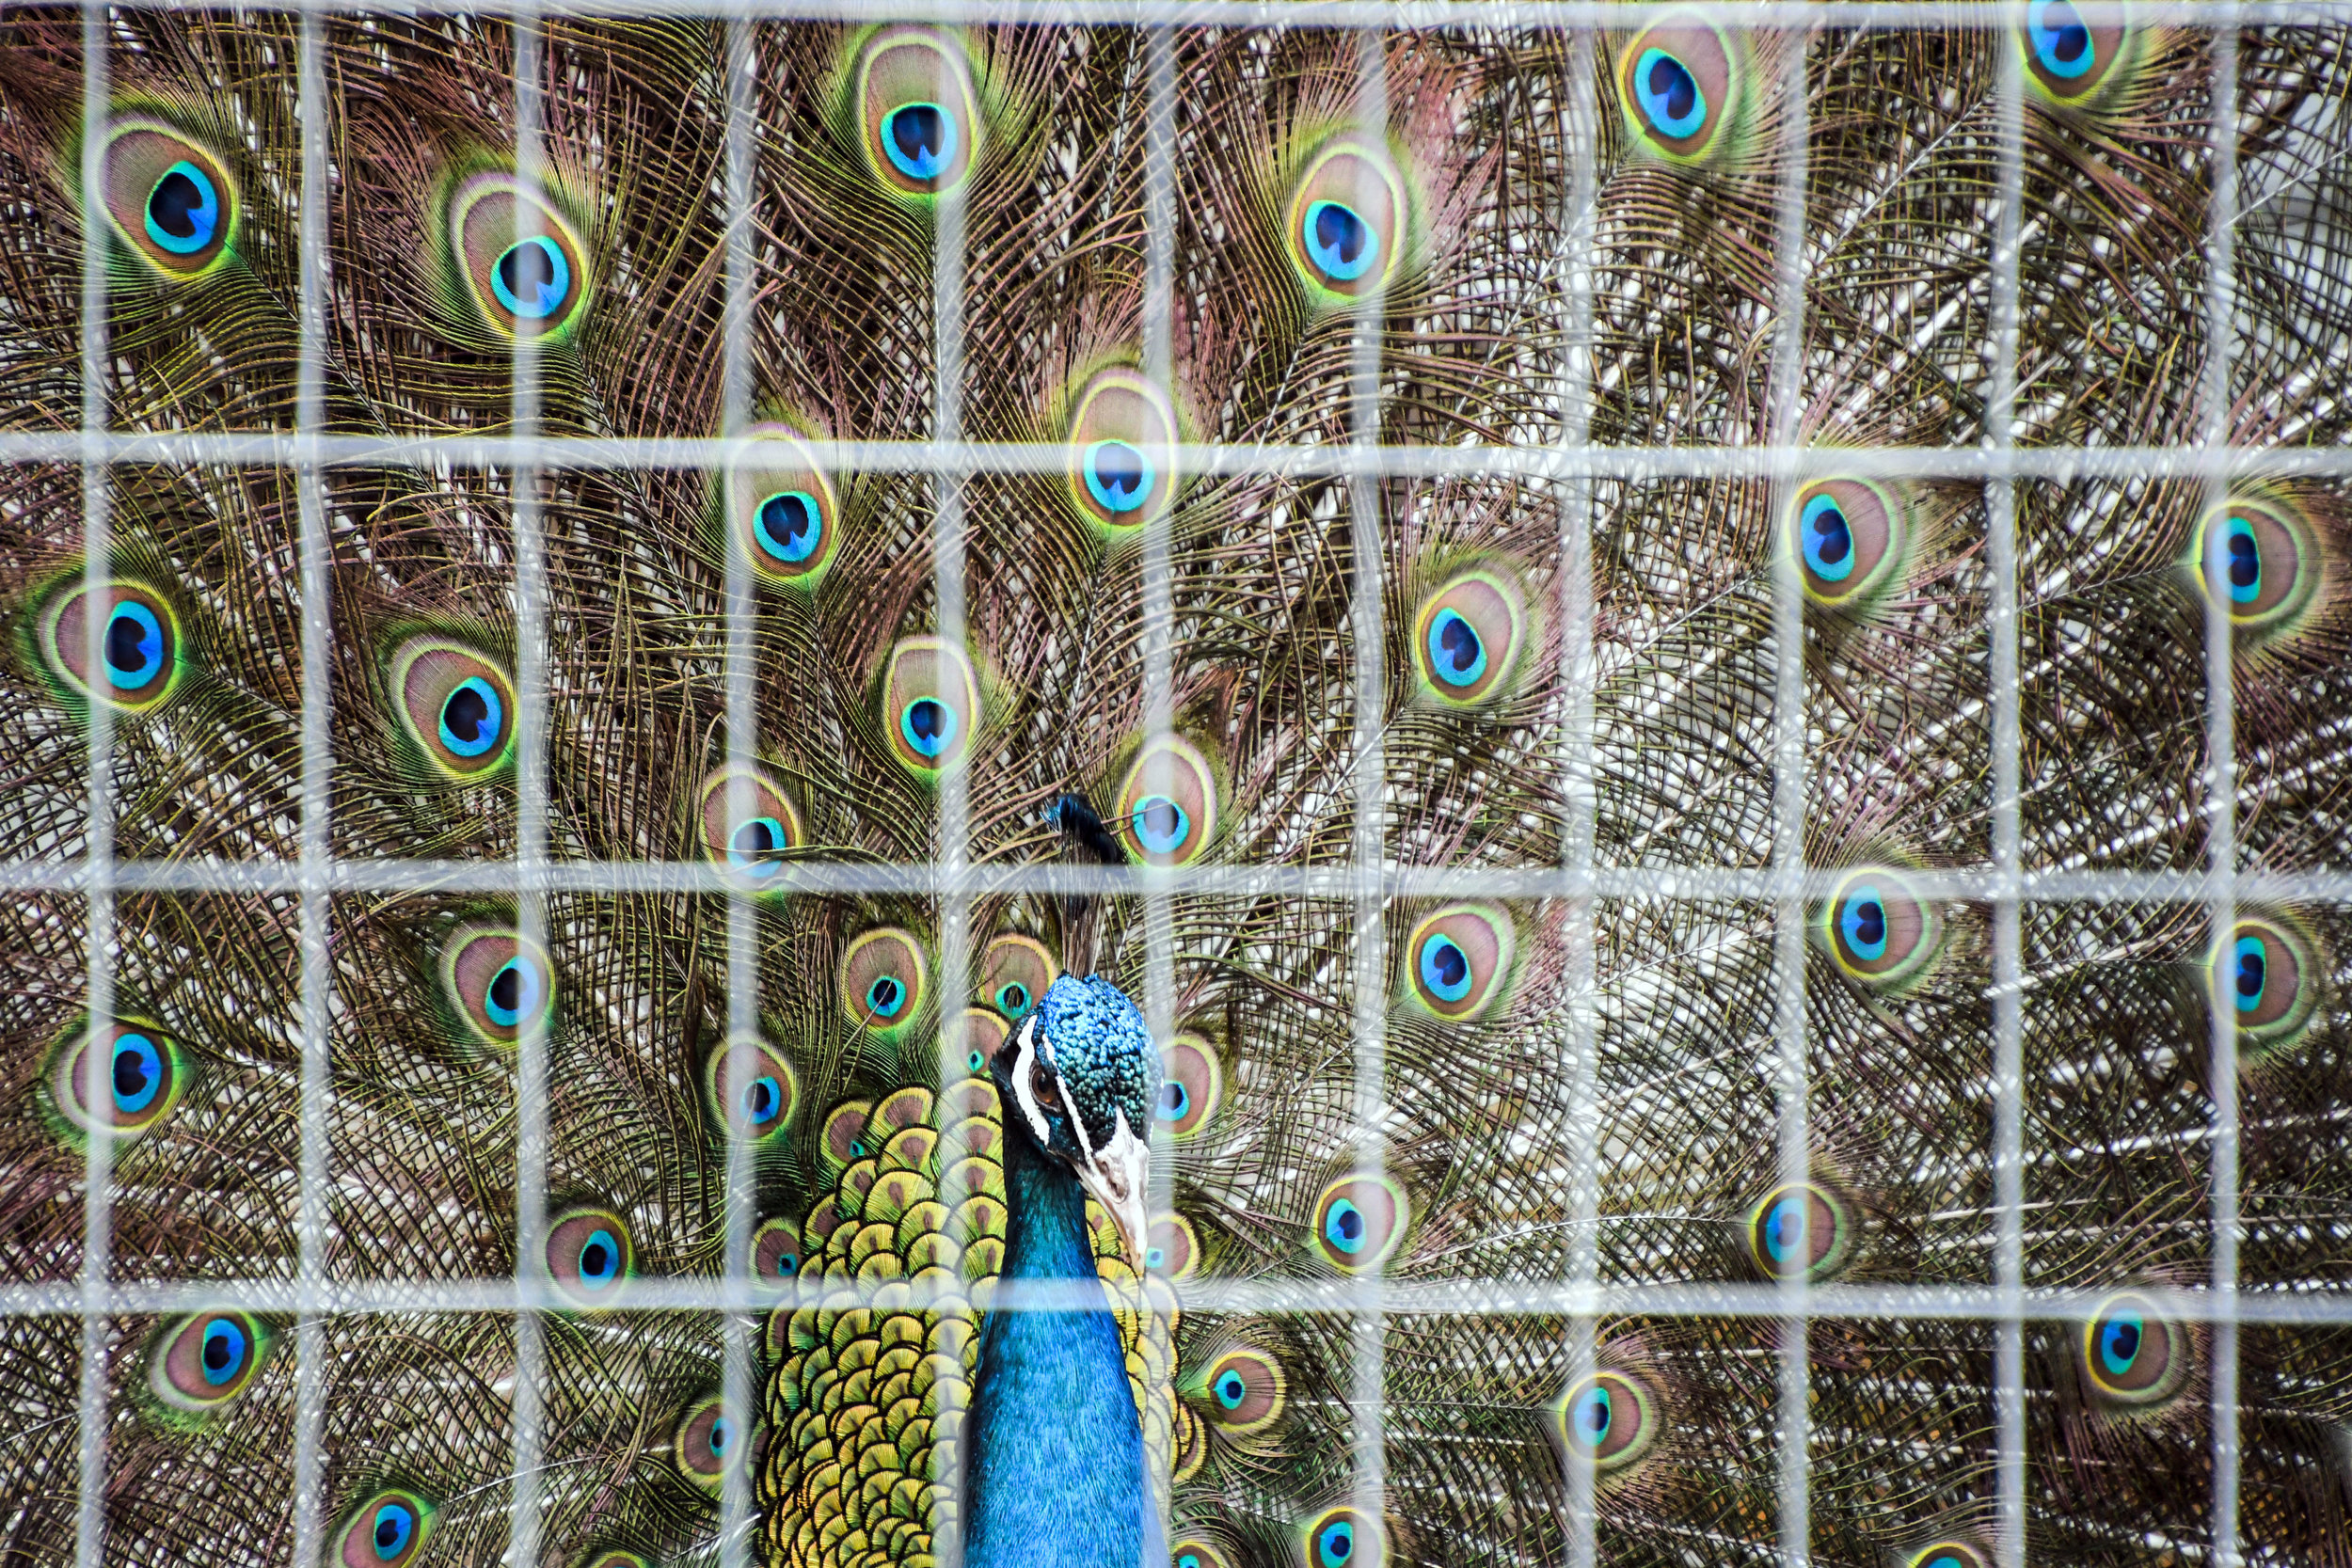 Peacock - Photo by Kareen King